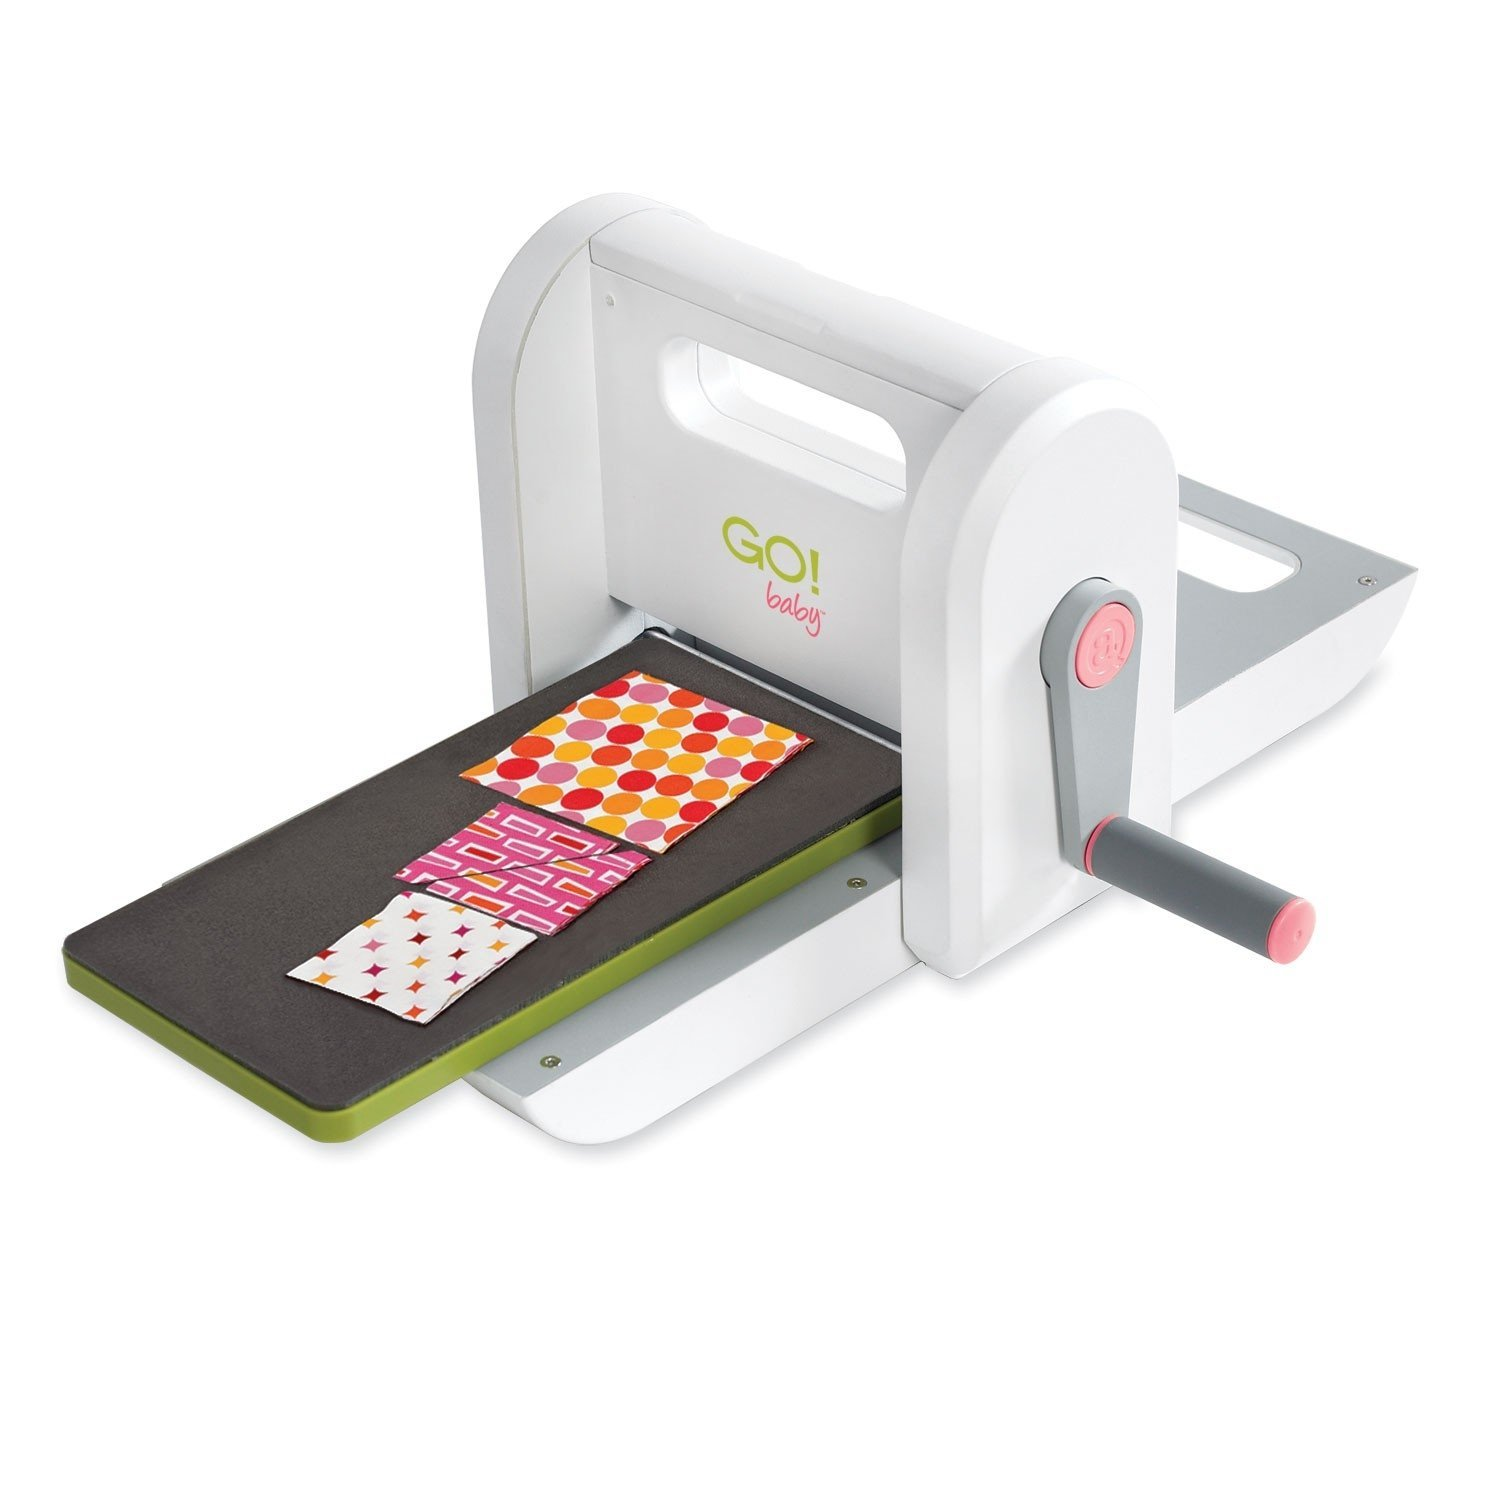 Best cutting machine for fabric: If you're short on cash, get this one instead